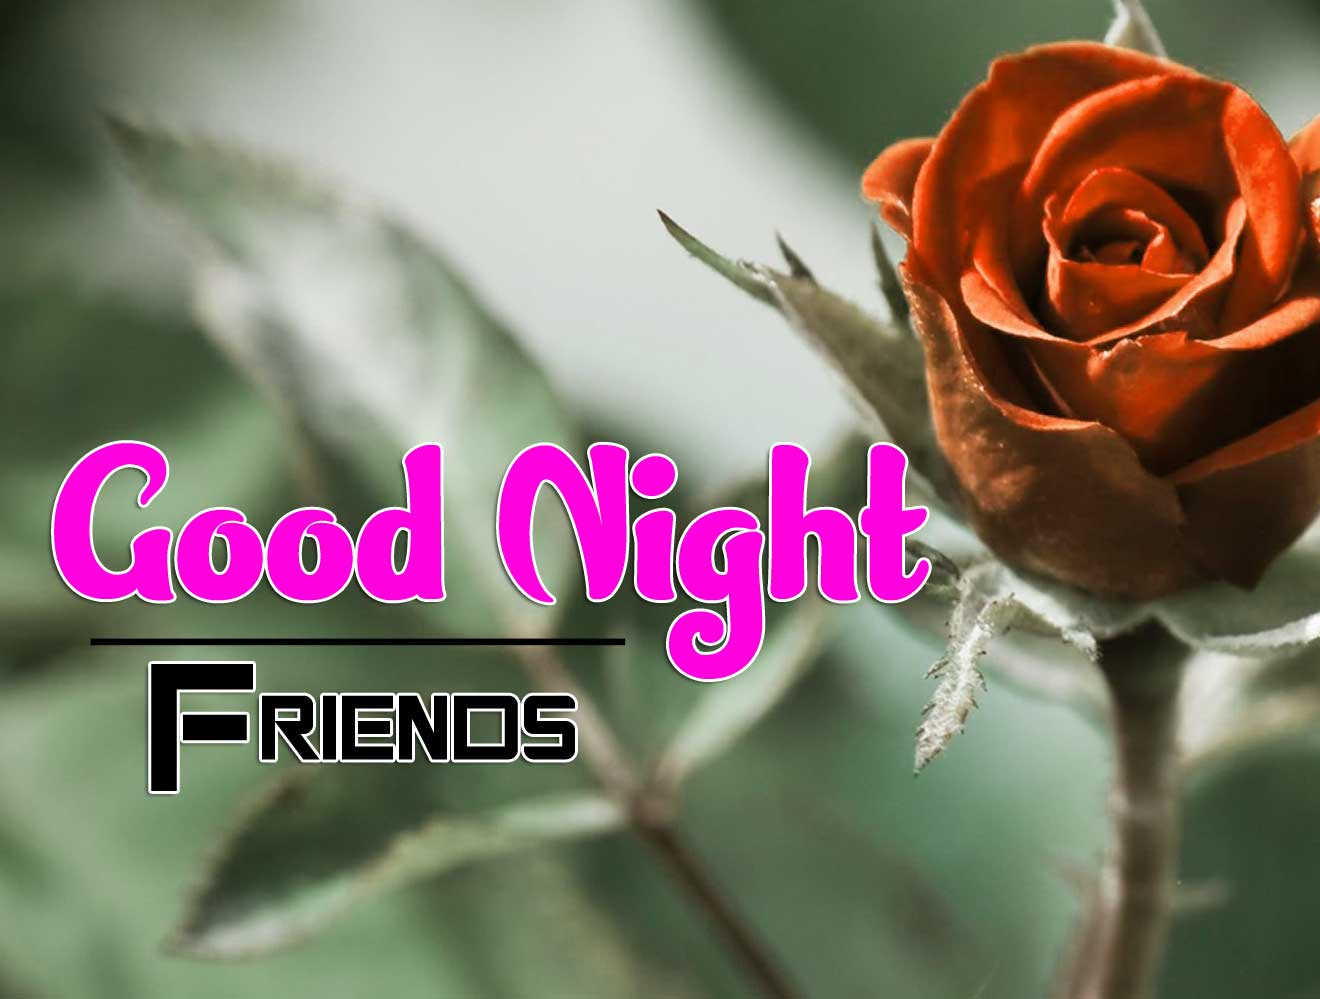 Lover Free Full HD Good Night Pics Images